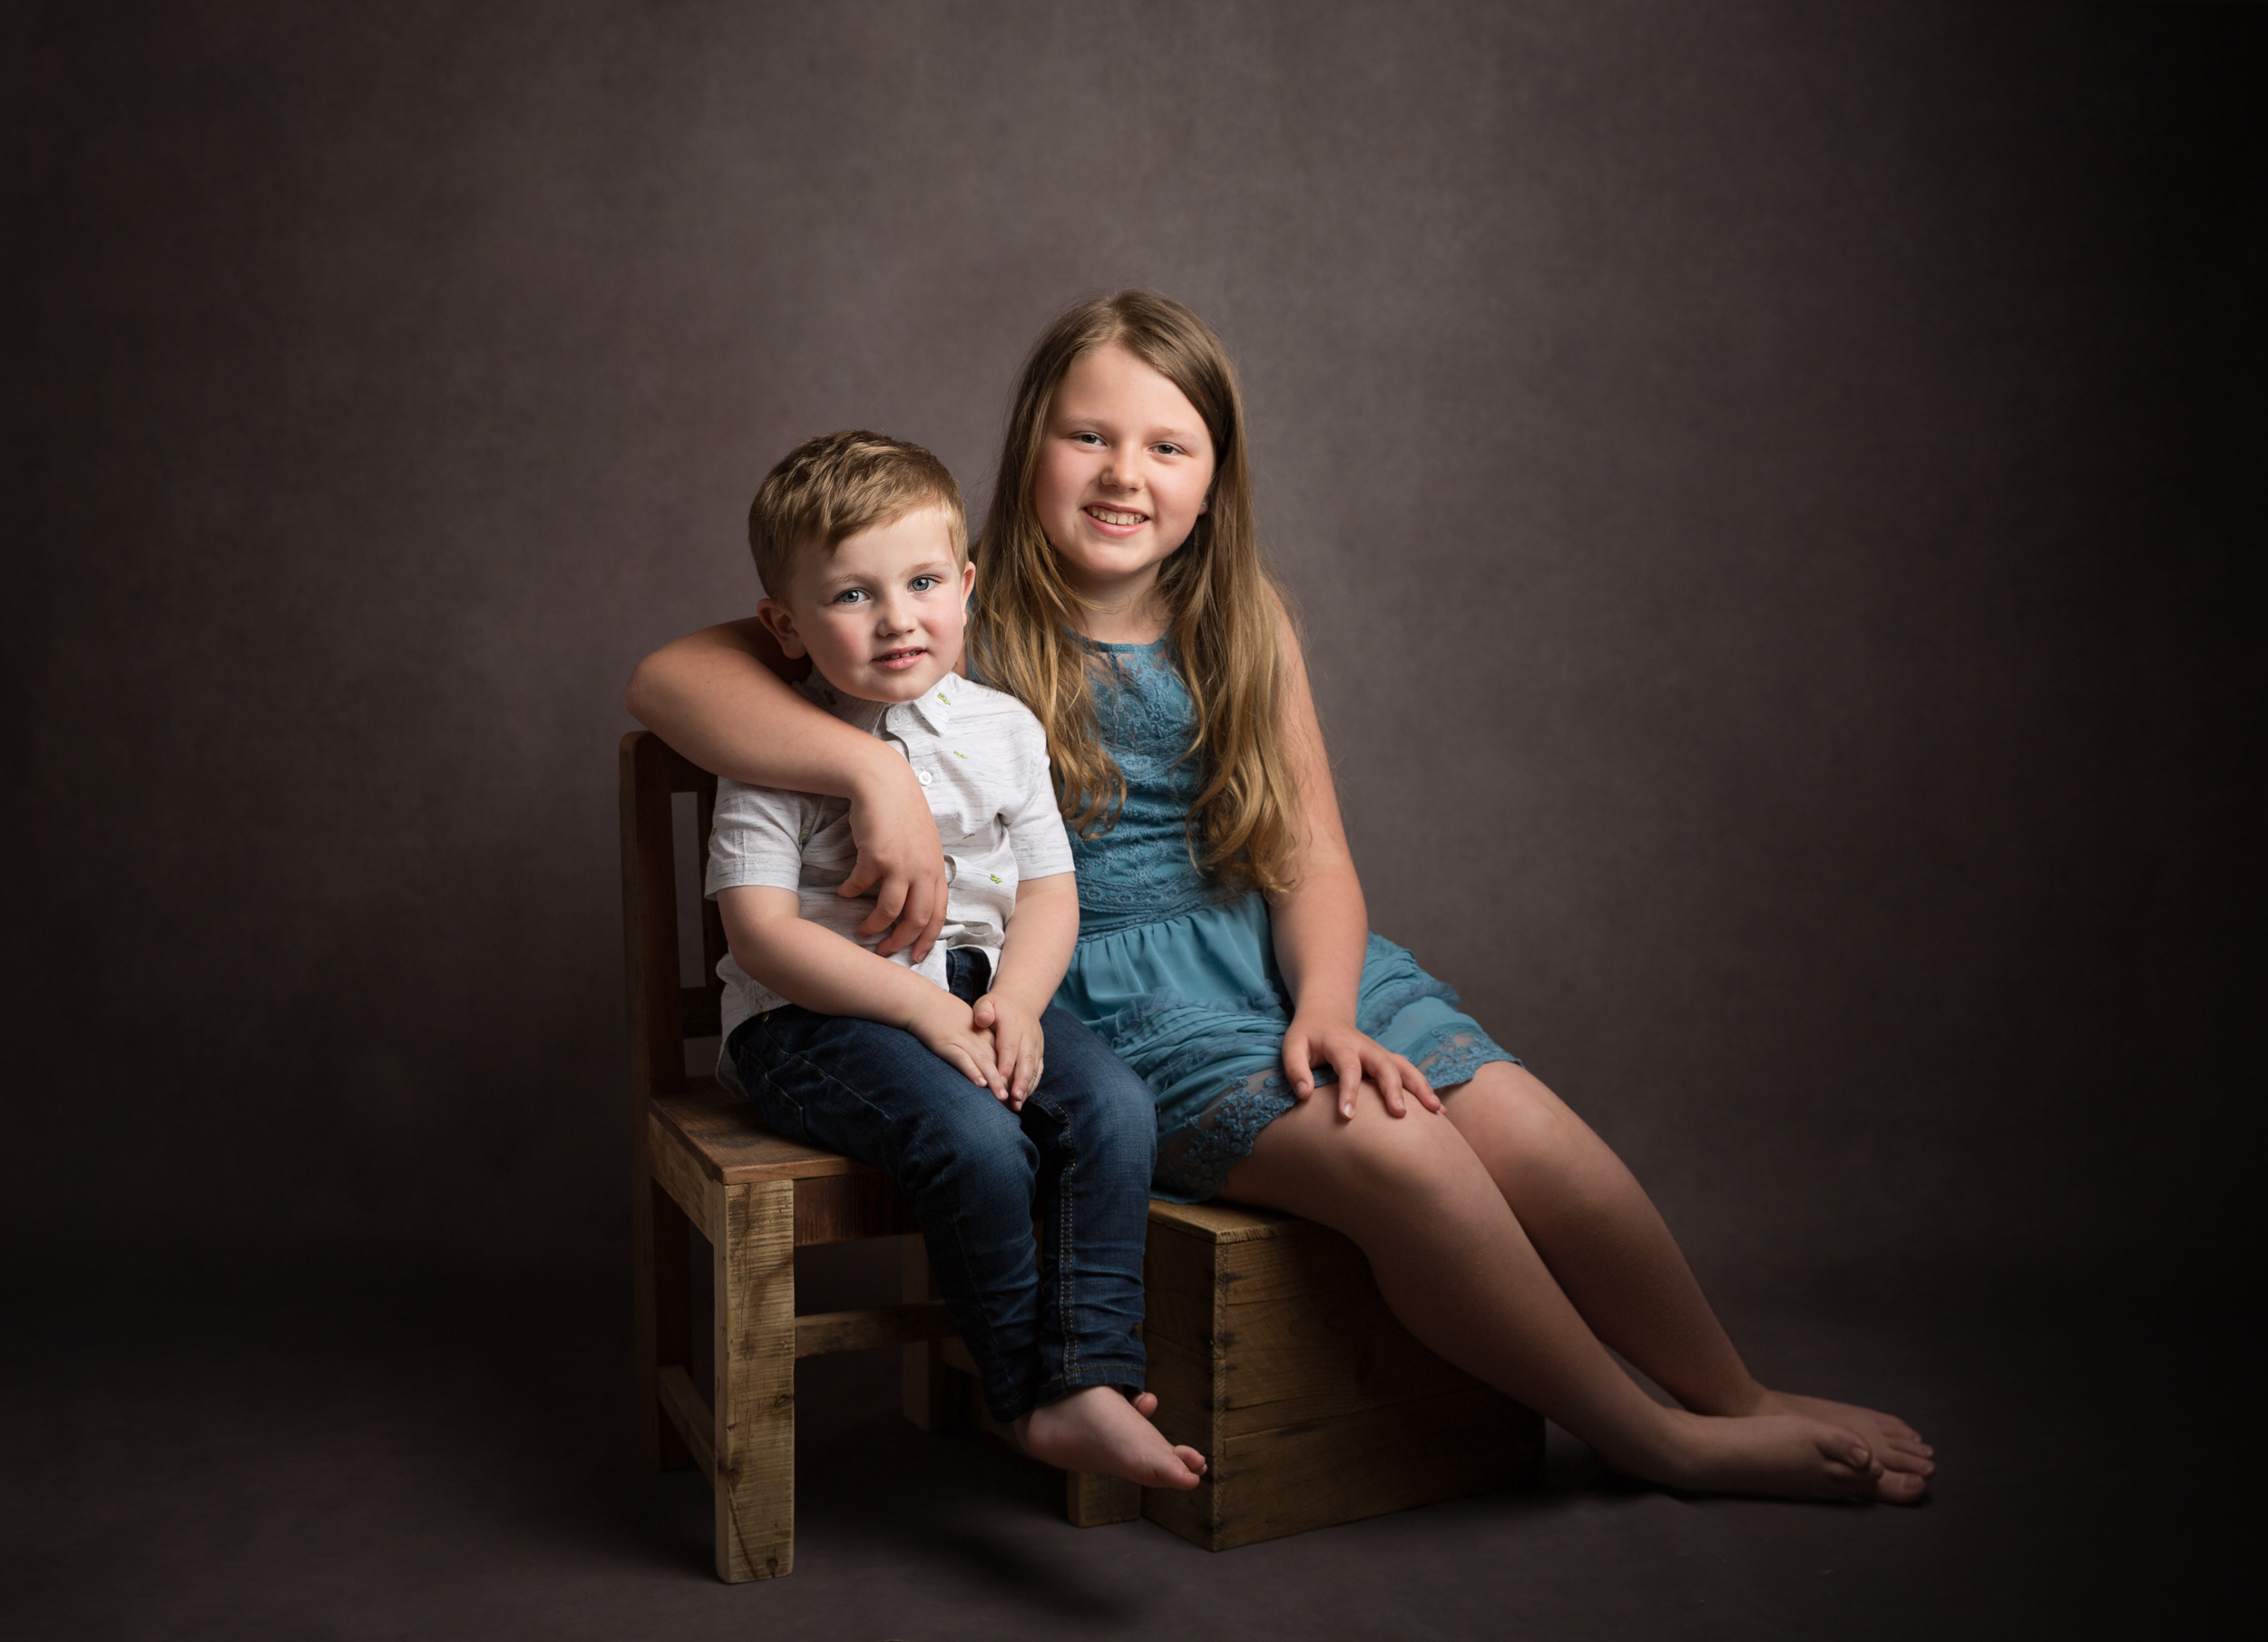 Siblings sitting together at their family portrait session in Cheshire